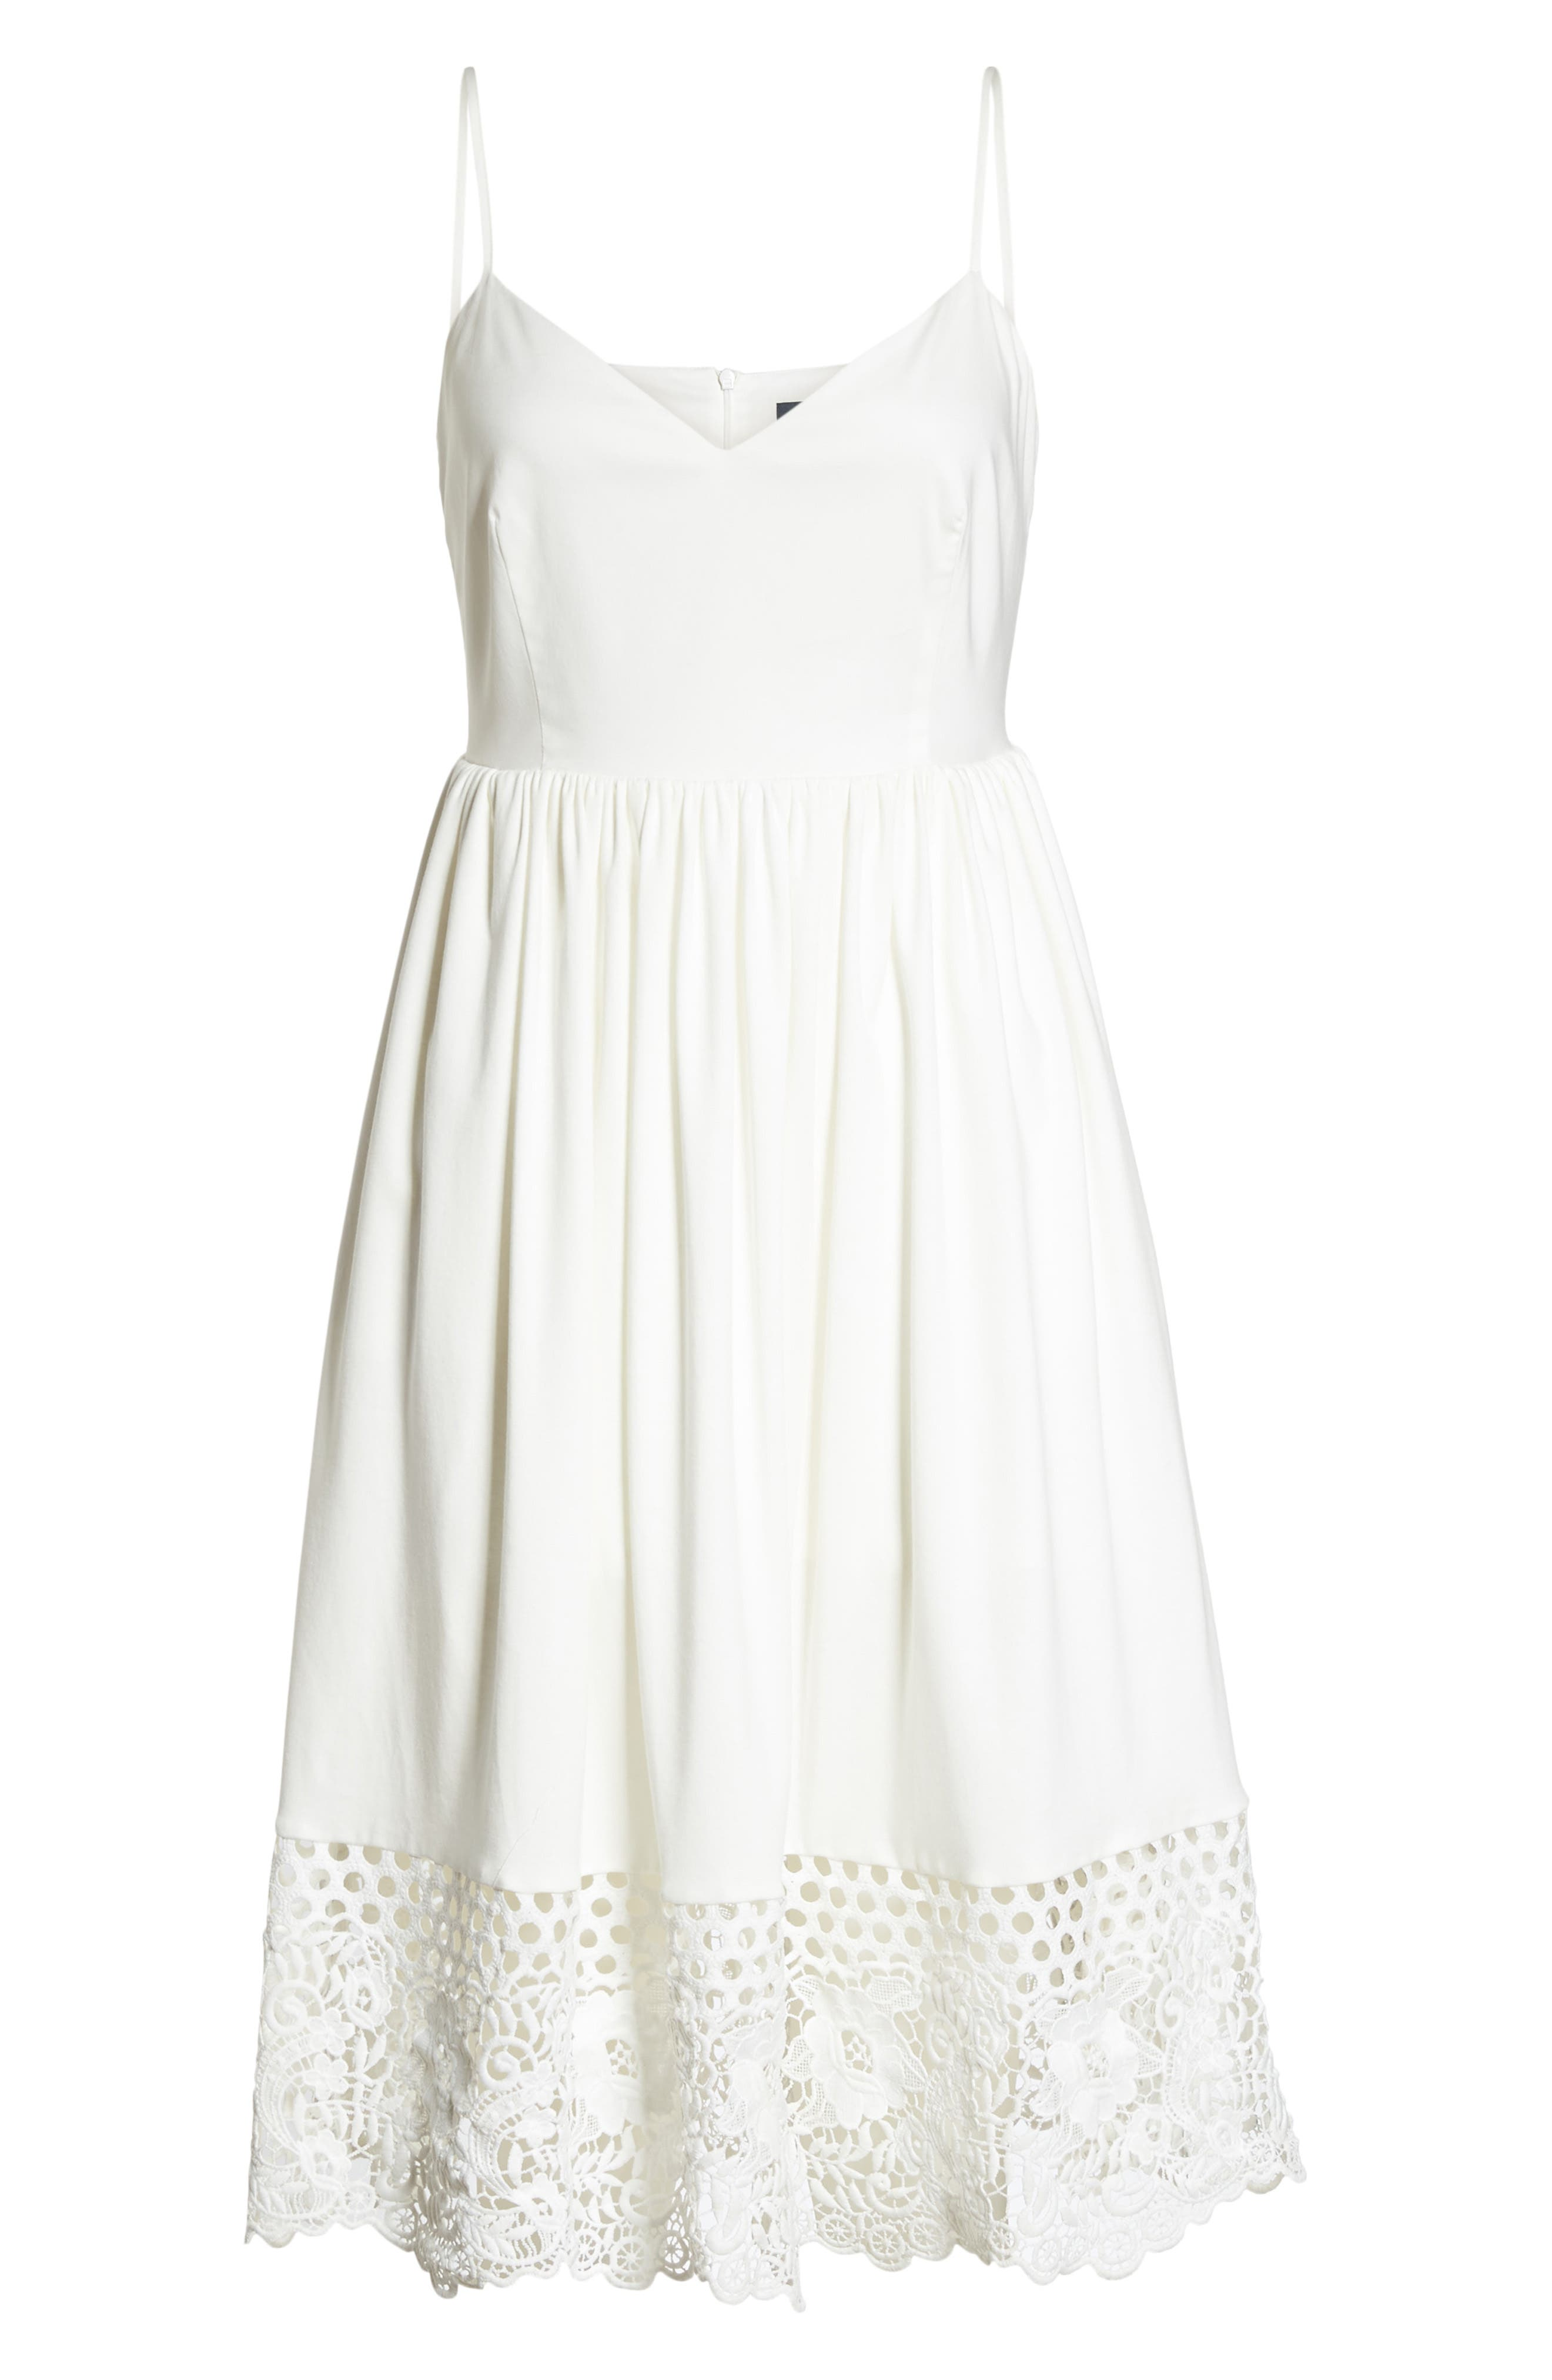 Salerno Lace Trim Jersey Dress,                             Alternate thumbnail 7, color,                             Summer White/ Summer White